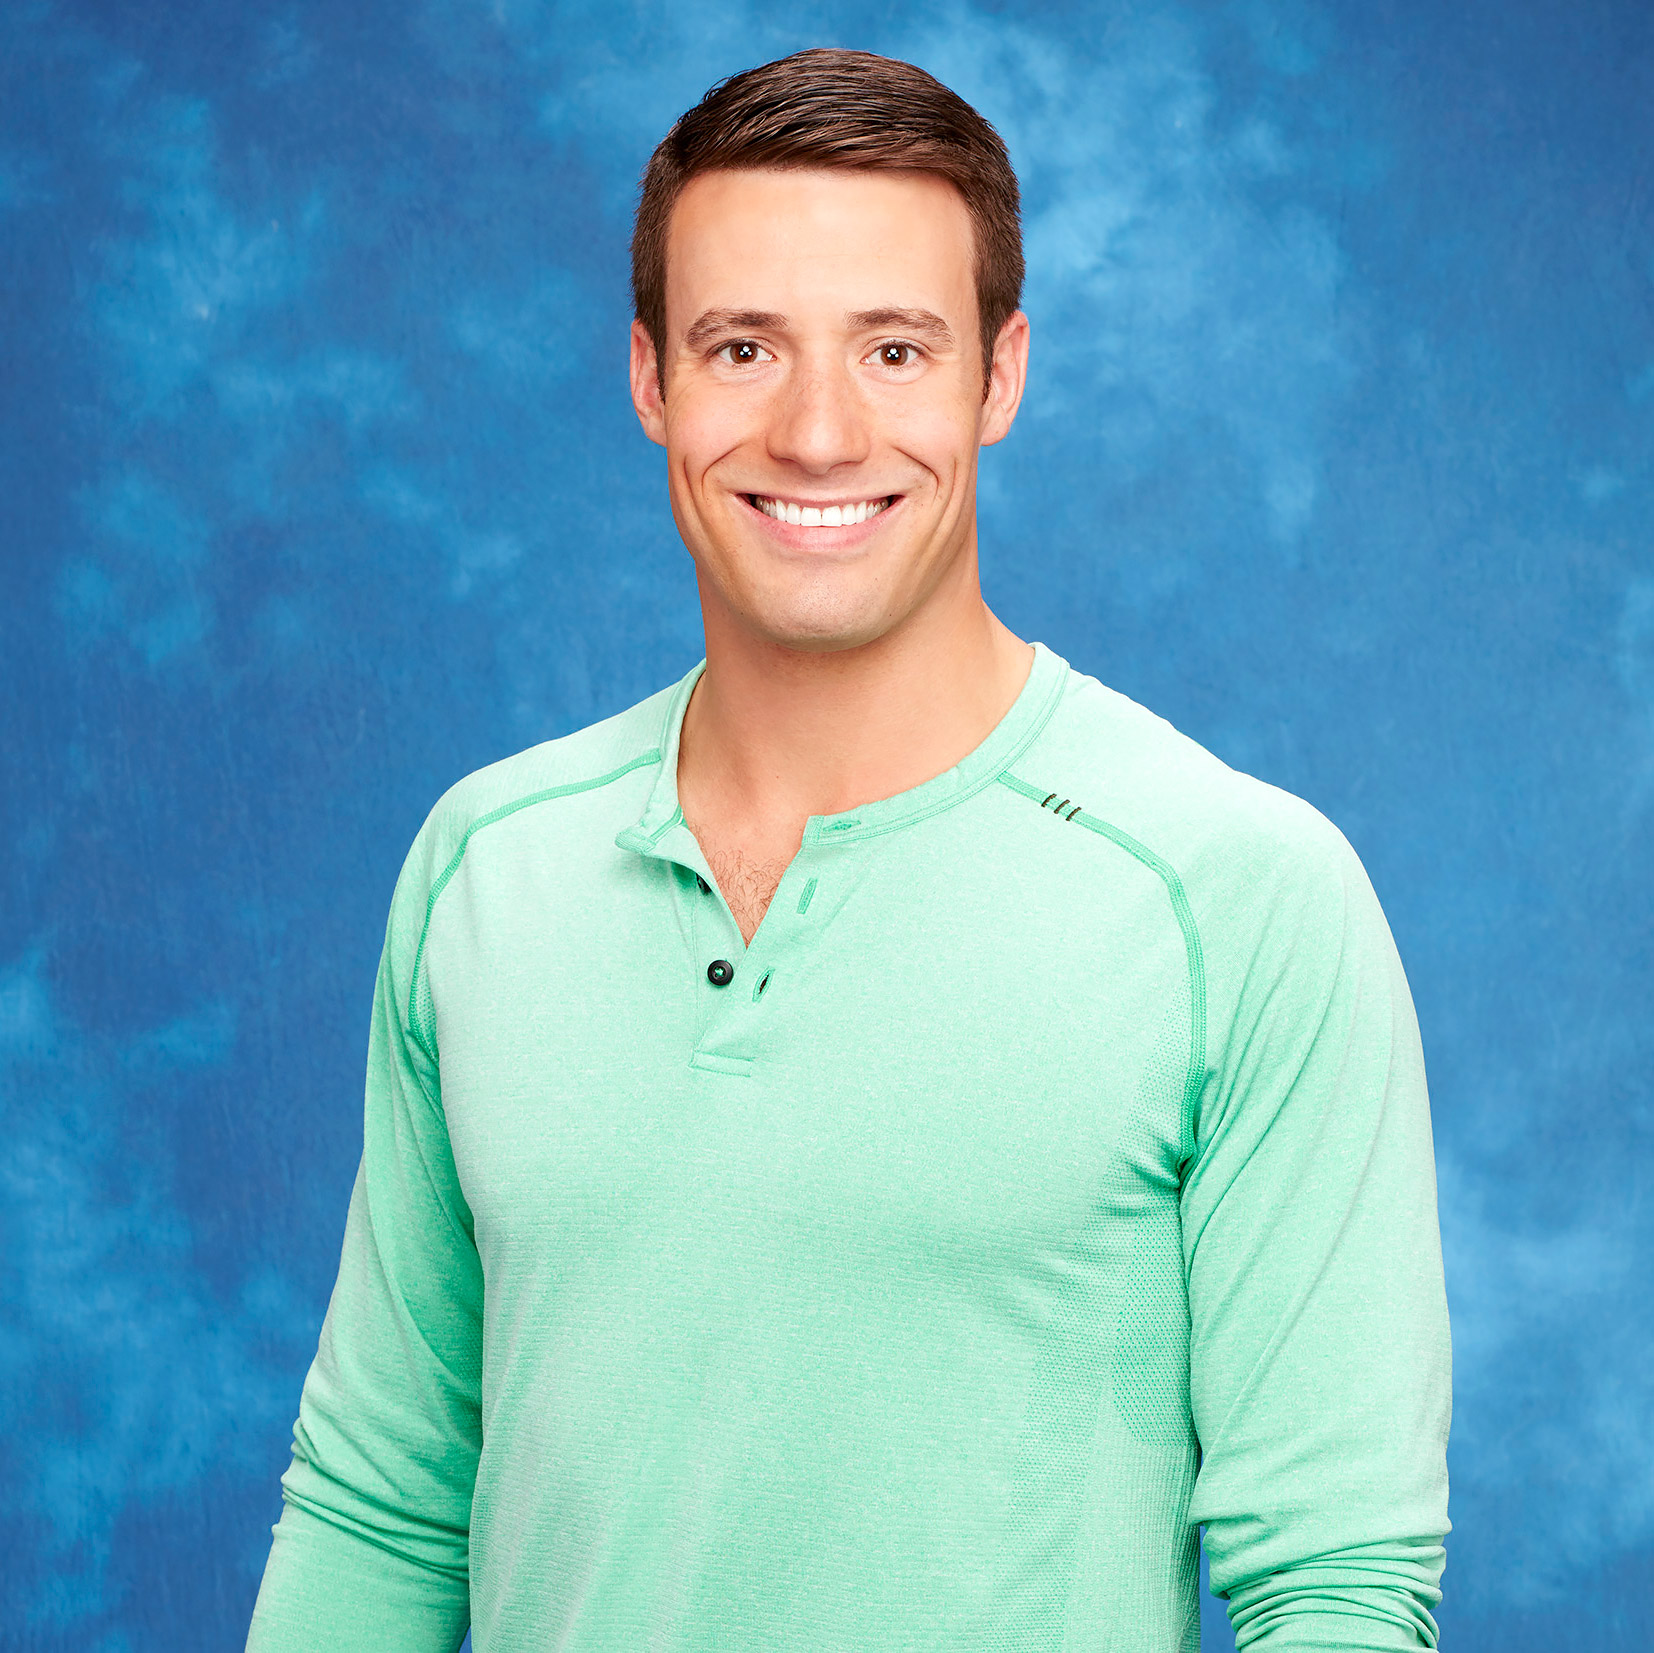 James S. from The Bachelorette